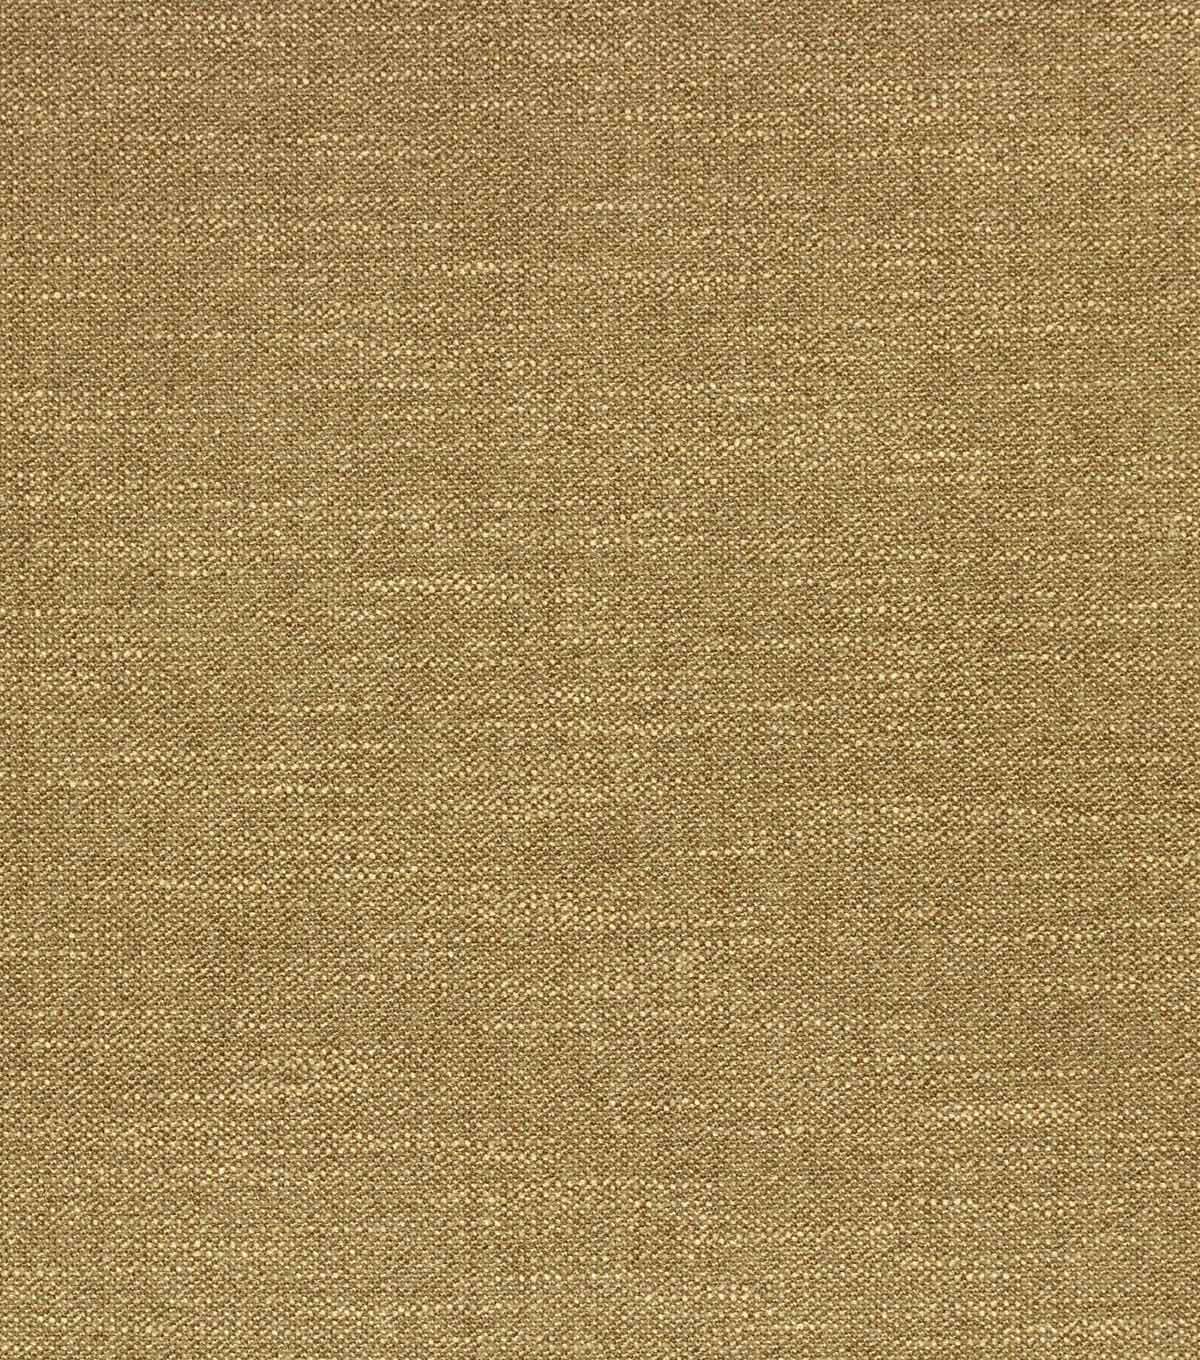 Richloom Studio Multi-Purpose Decor Fabric 54\u0027\u0027-Driftwood Avignon